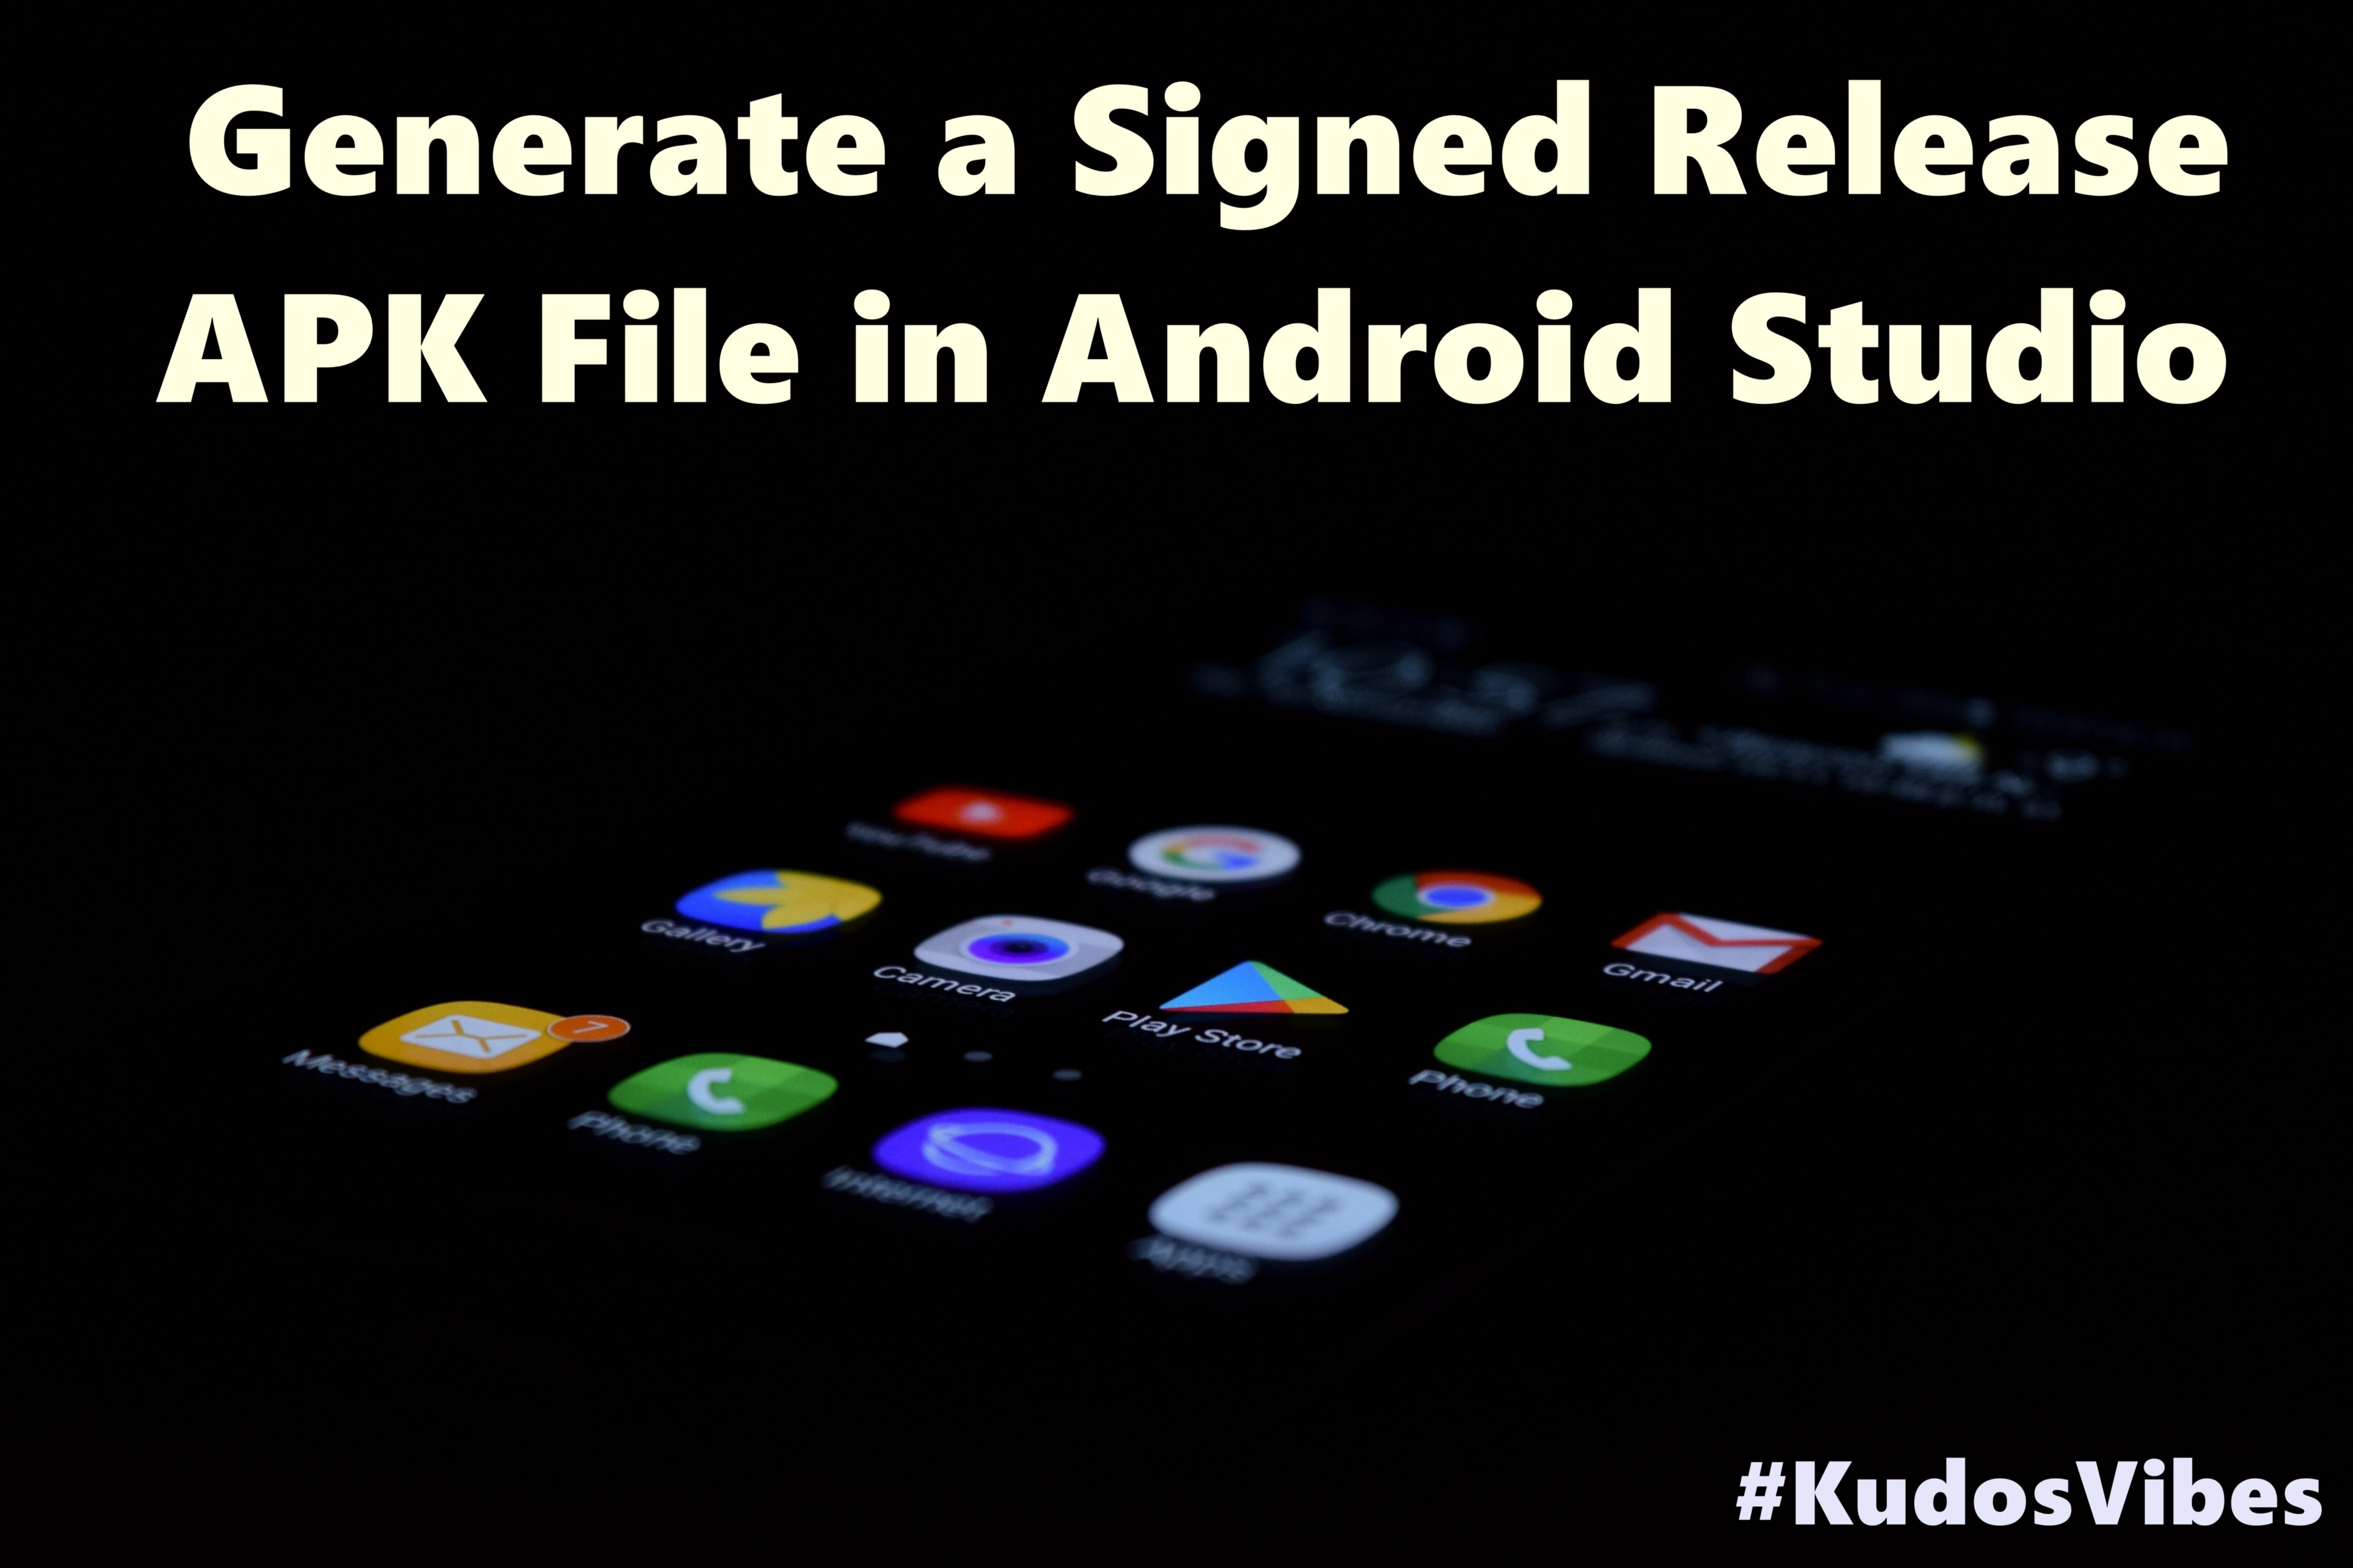 Generate a Signed Release APK File in Android Studio